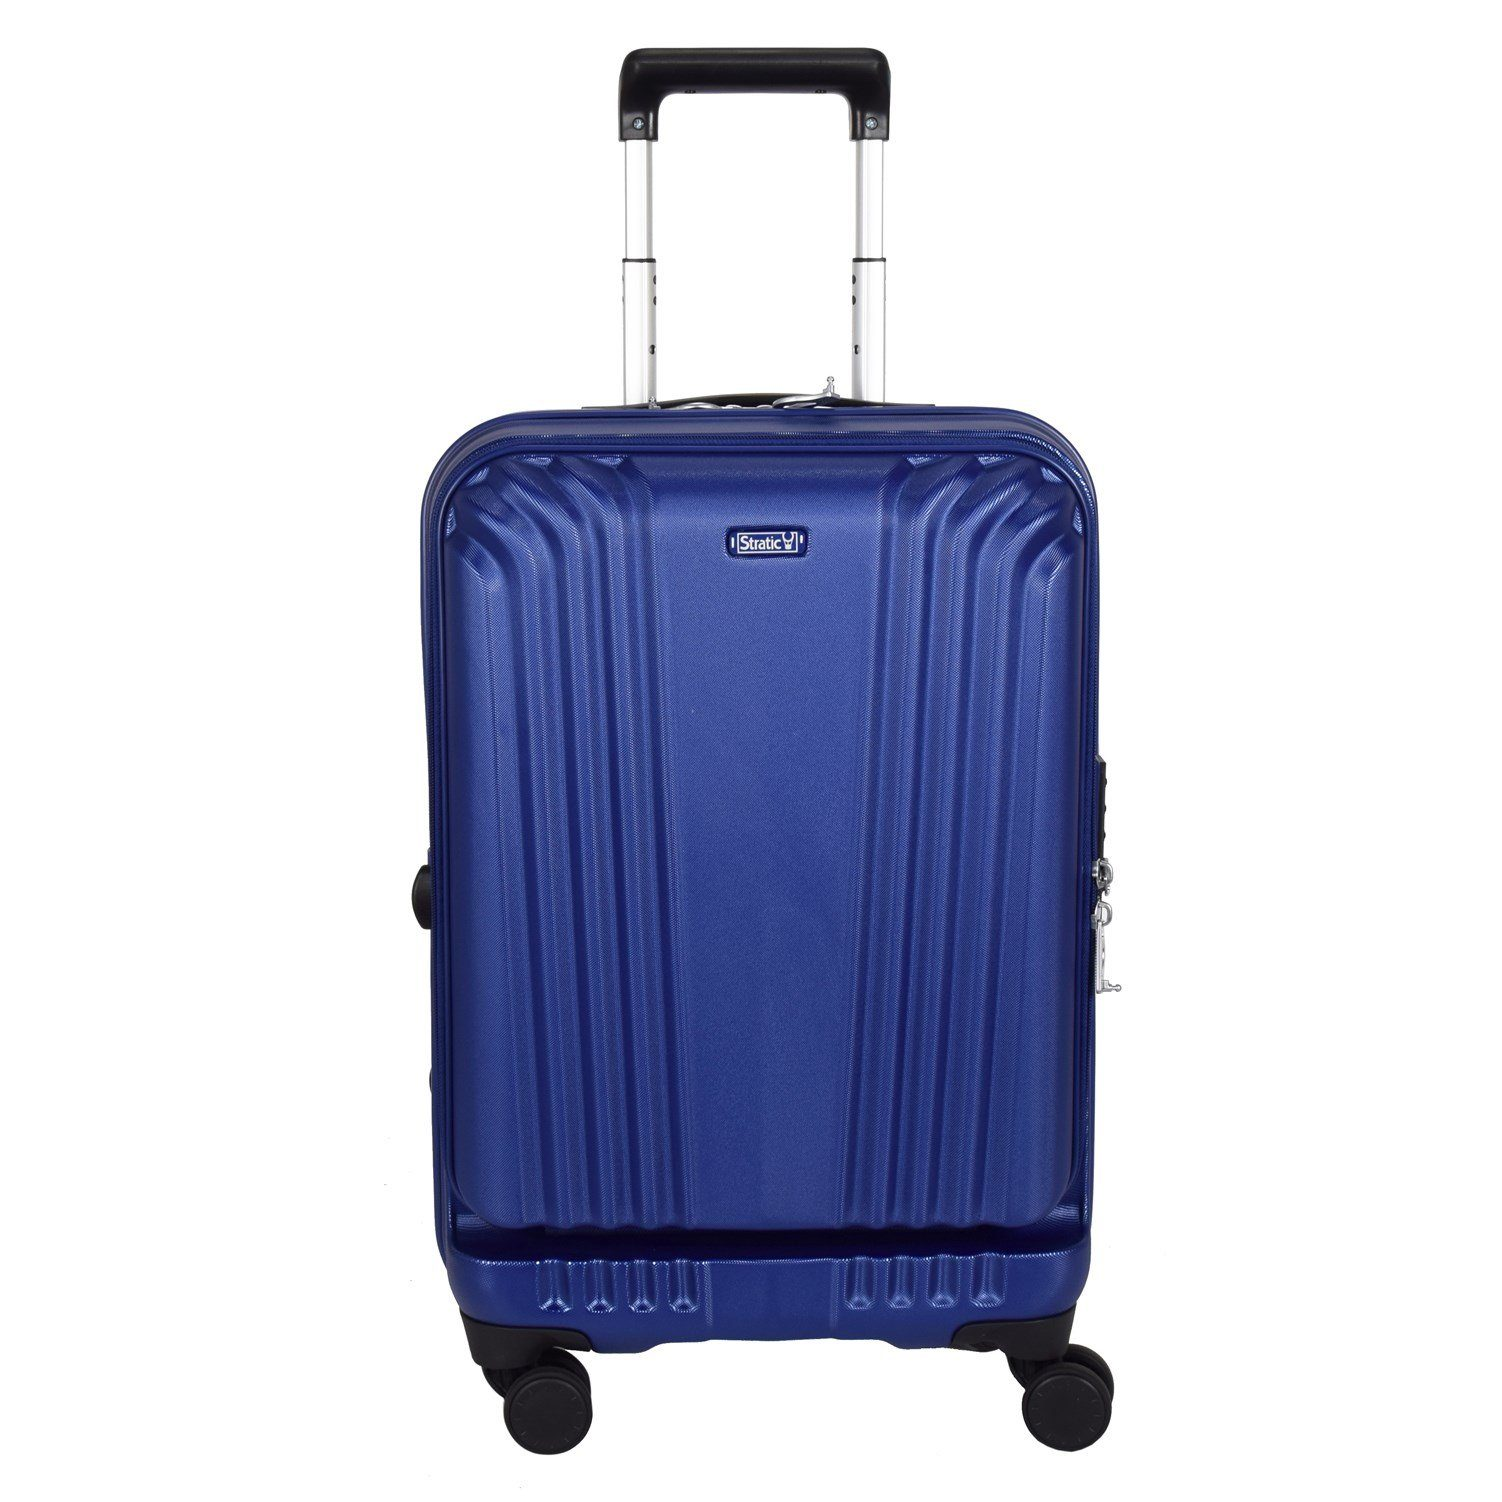 Stratic Cone 4-Rollen Trolley 57 cm